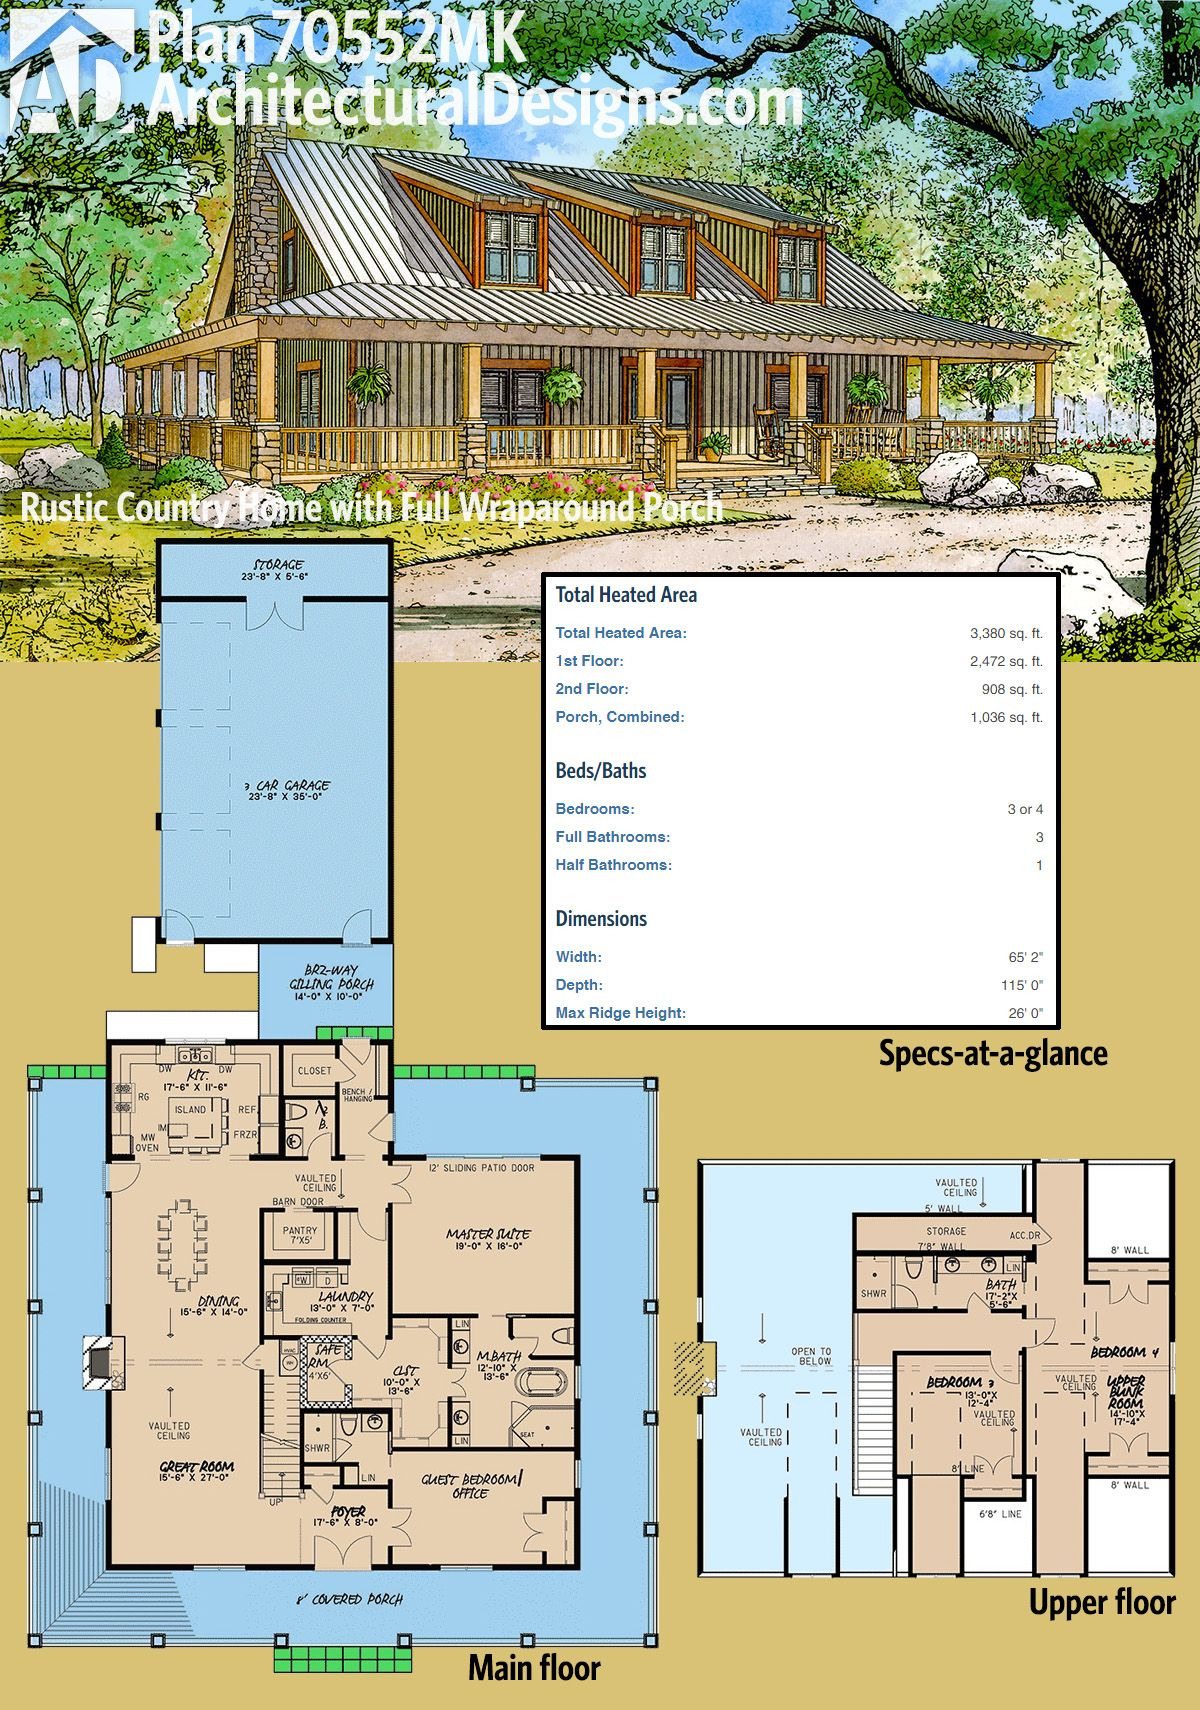 Country House Plans with Porches Luxury Plan Mk Rustic Country Home Plan with Wraparound Porch